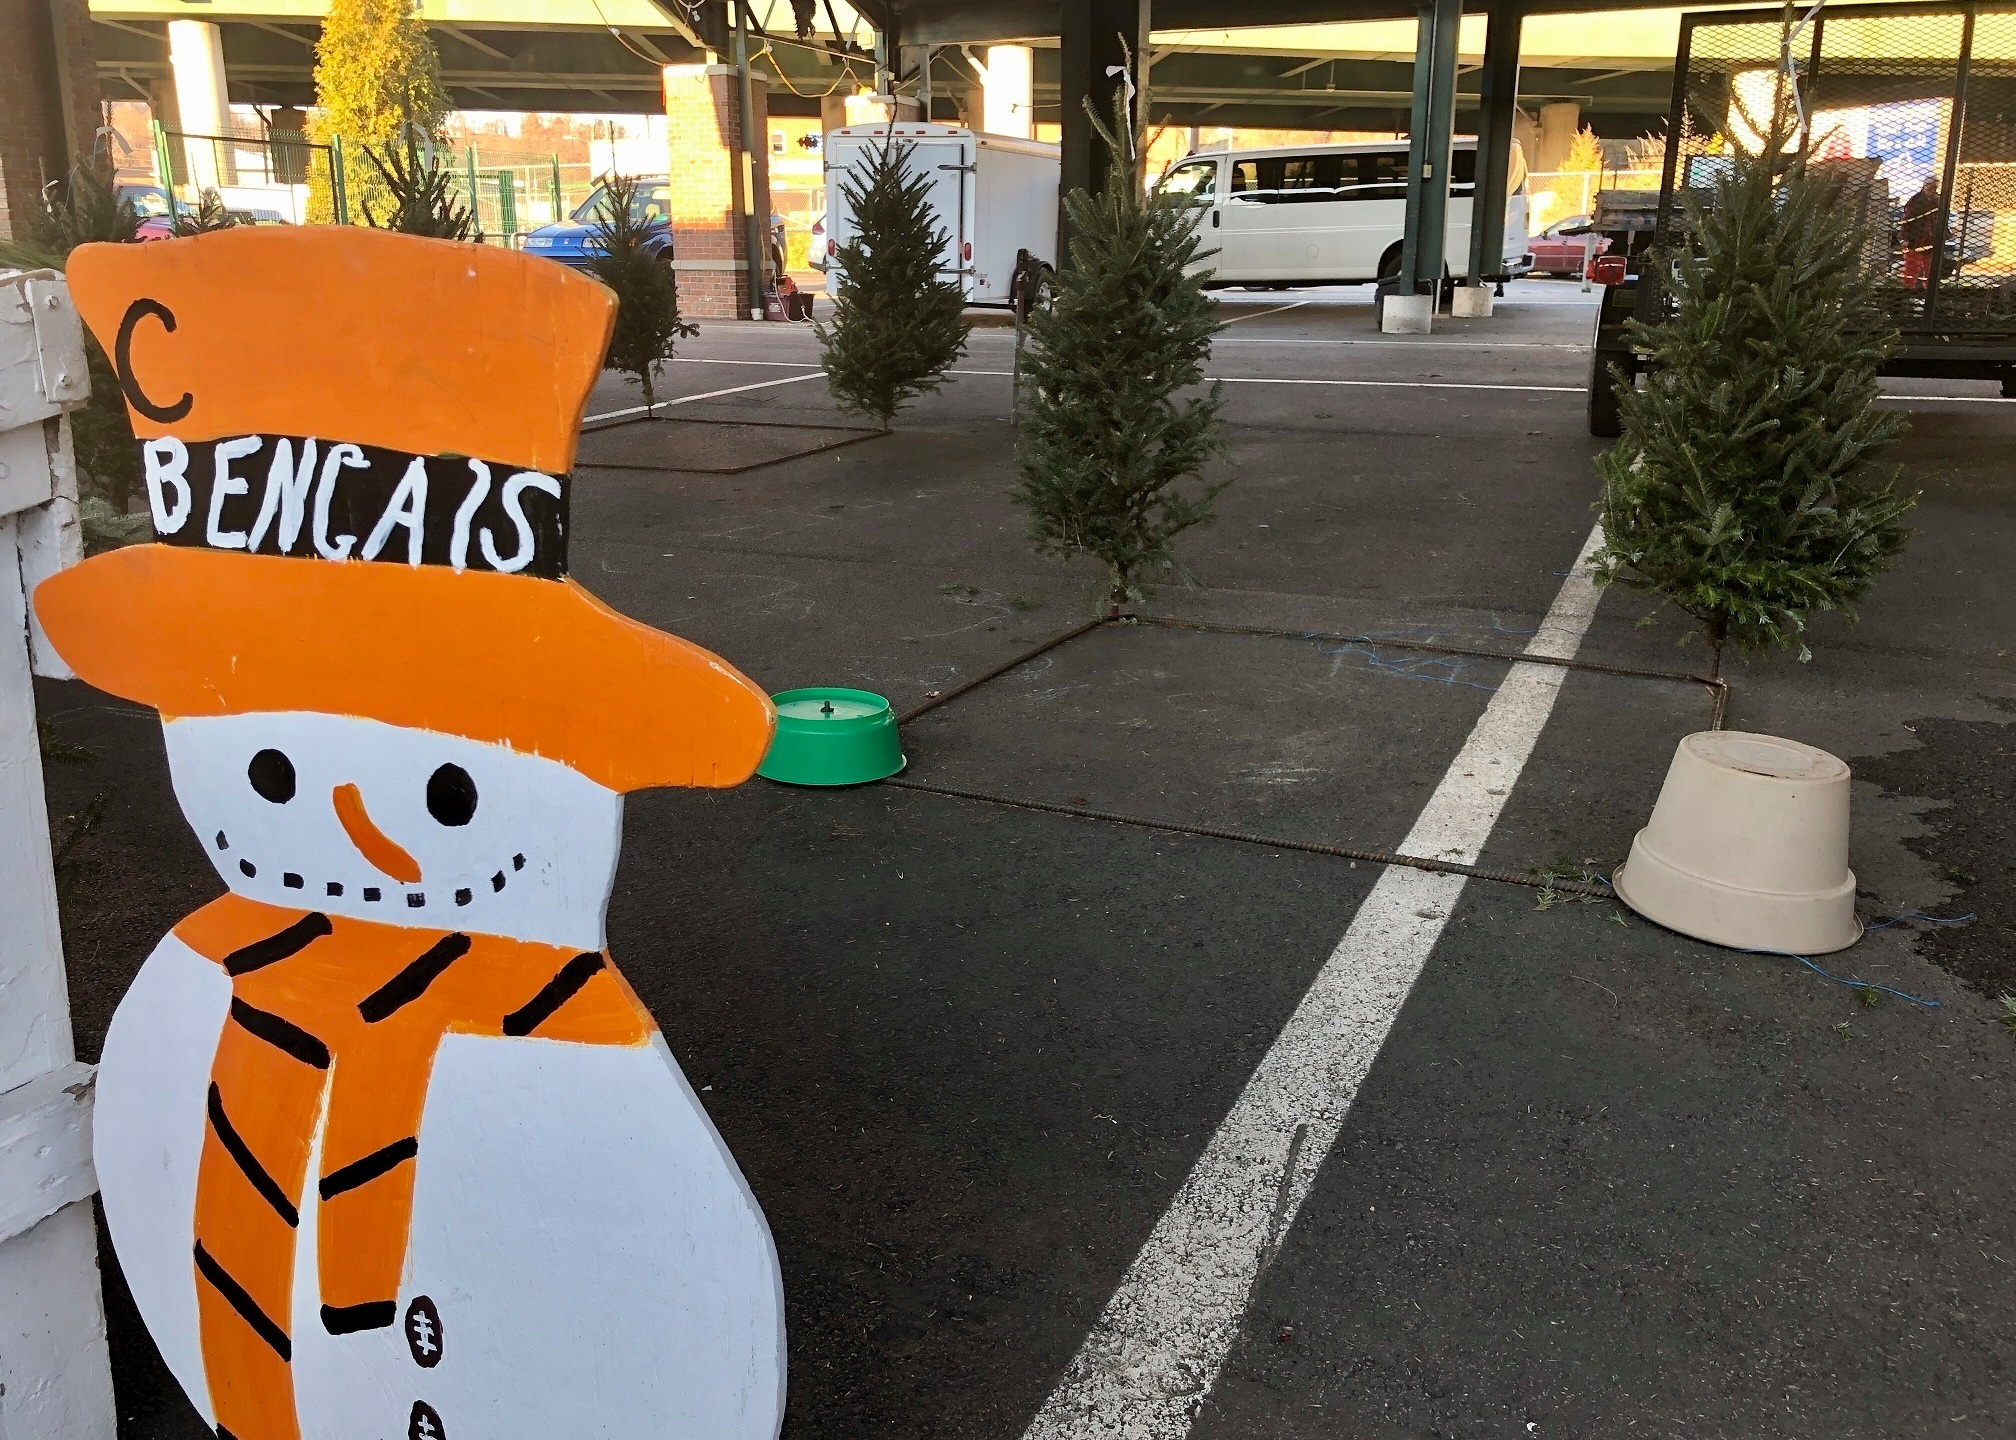 Shop early': US Christmas trees supplies tight, prices up